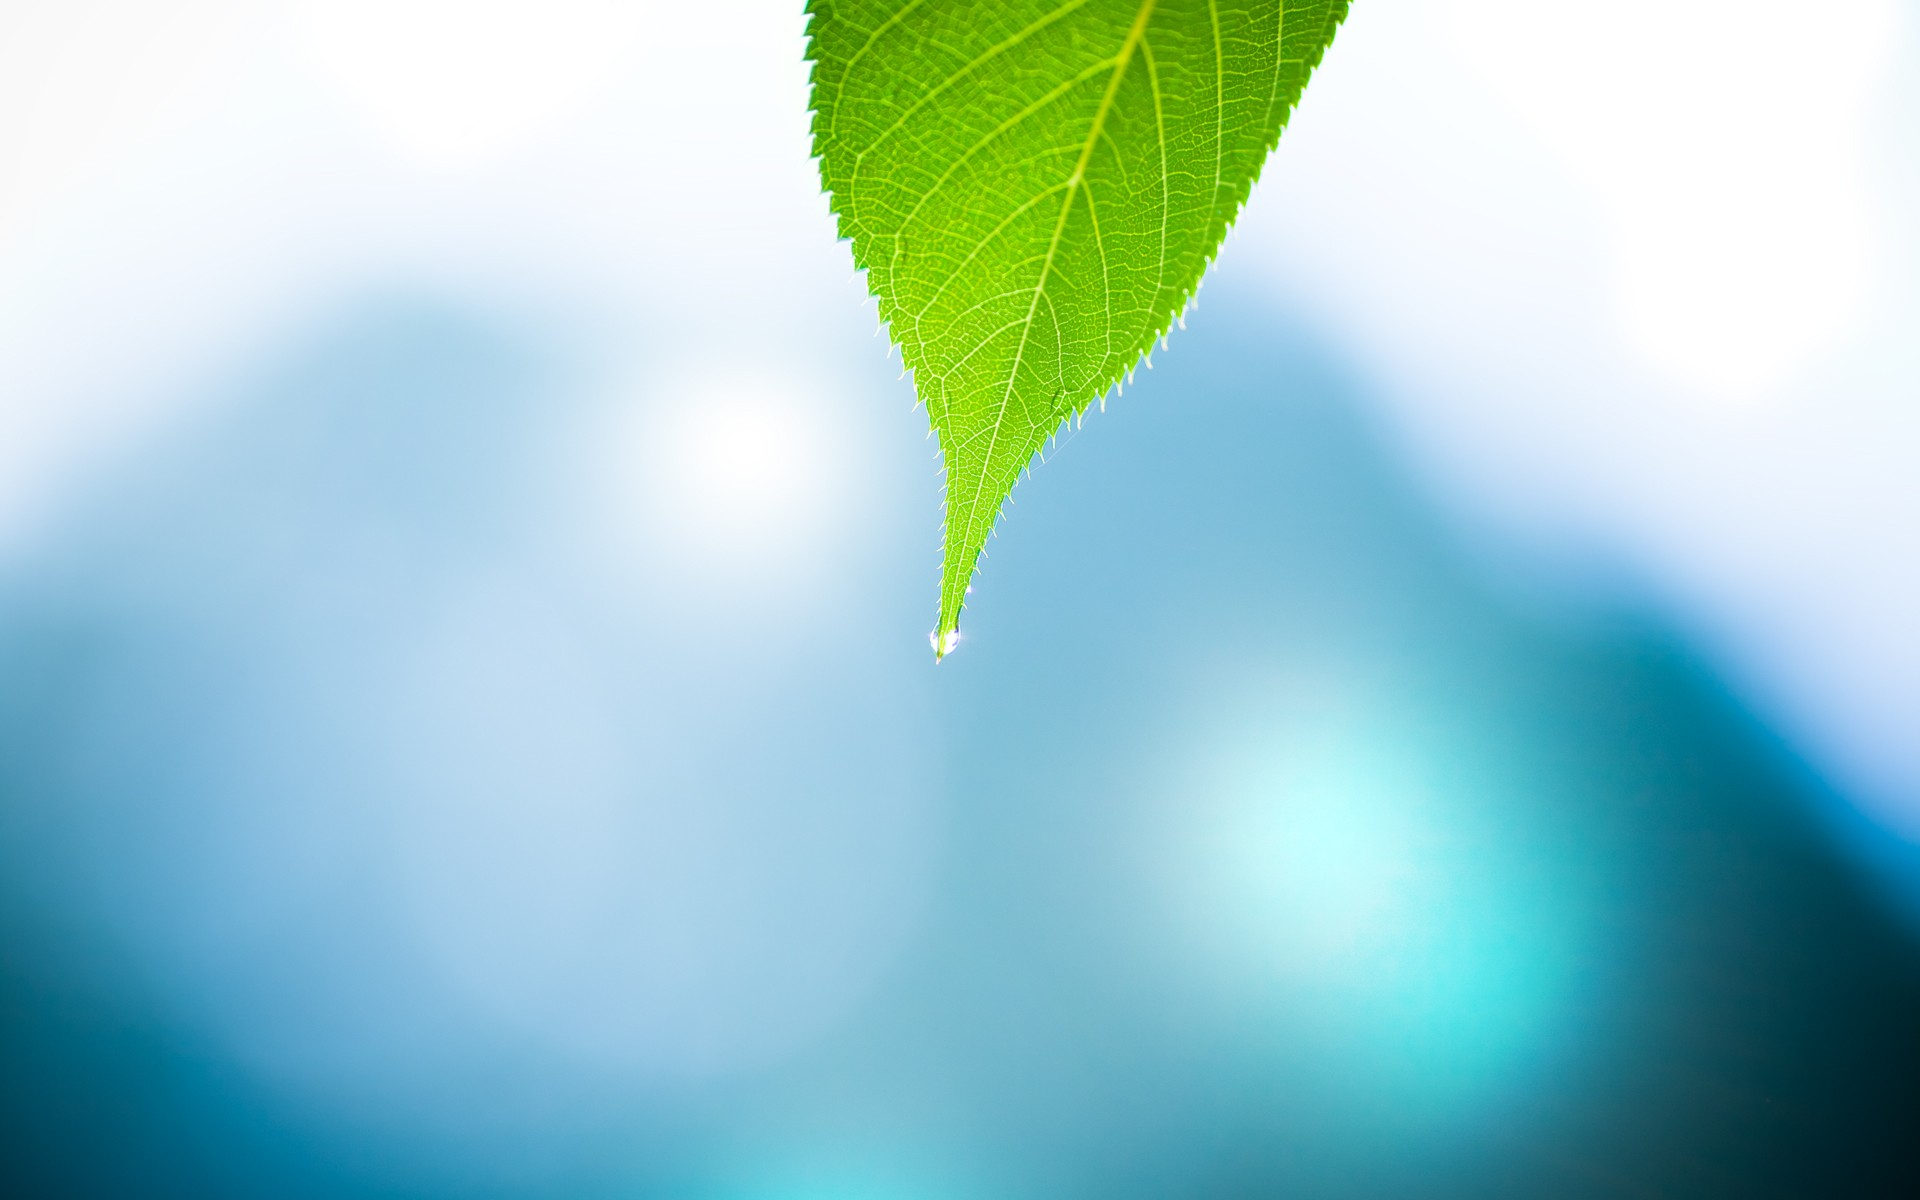 Leave macro hd nature 4k wallpapers images backgrounds for And pictures